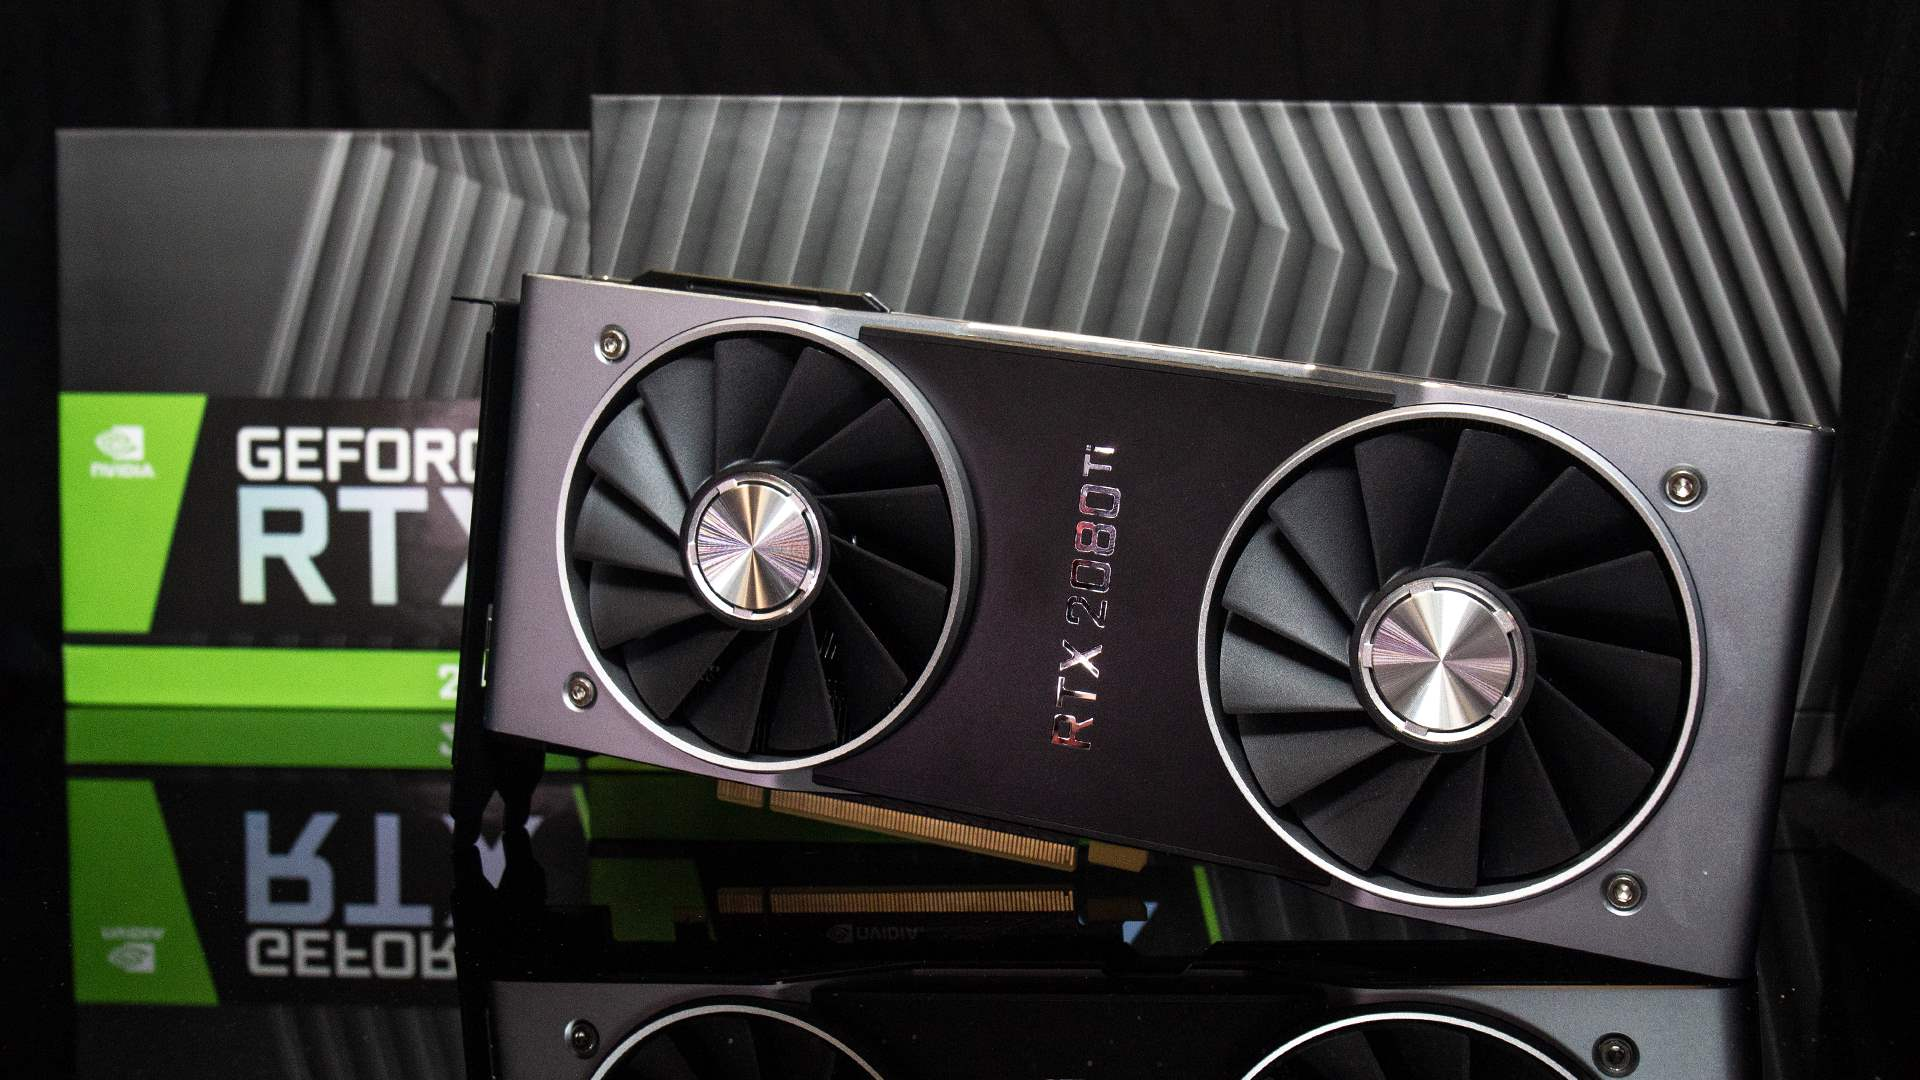 Nvidia GeForce RTX 2080 Ti review: the fastest gaming card